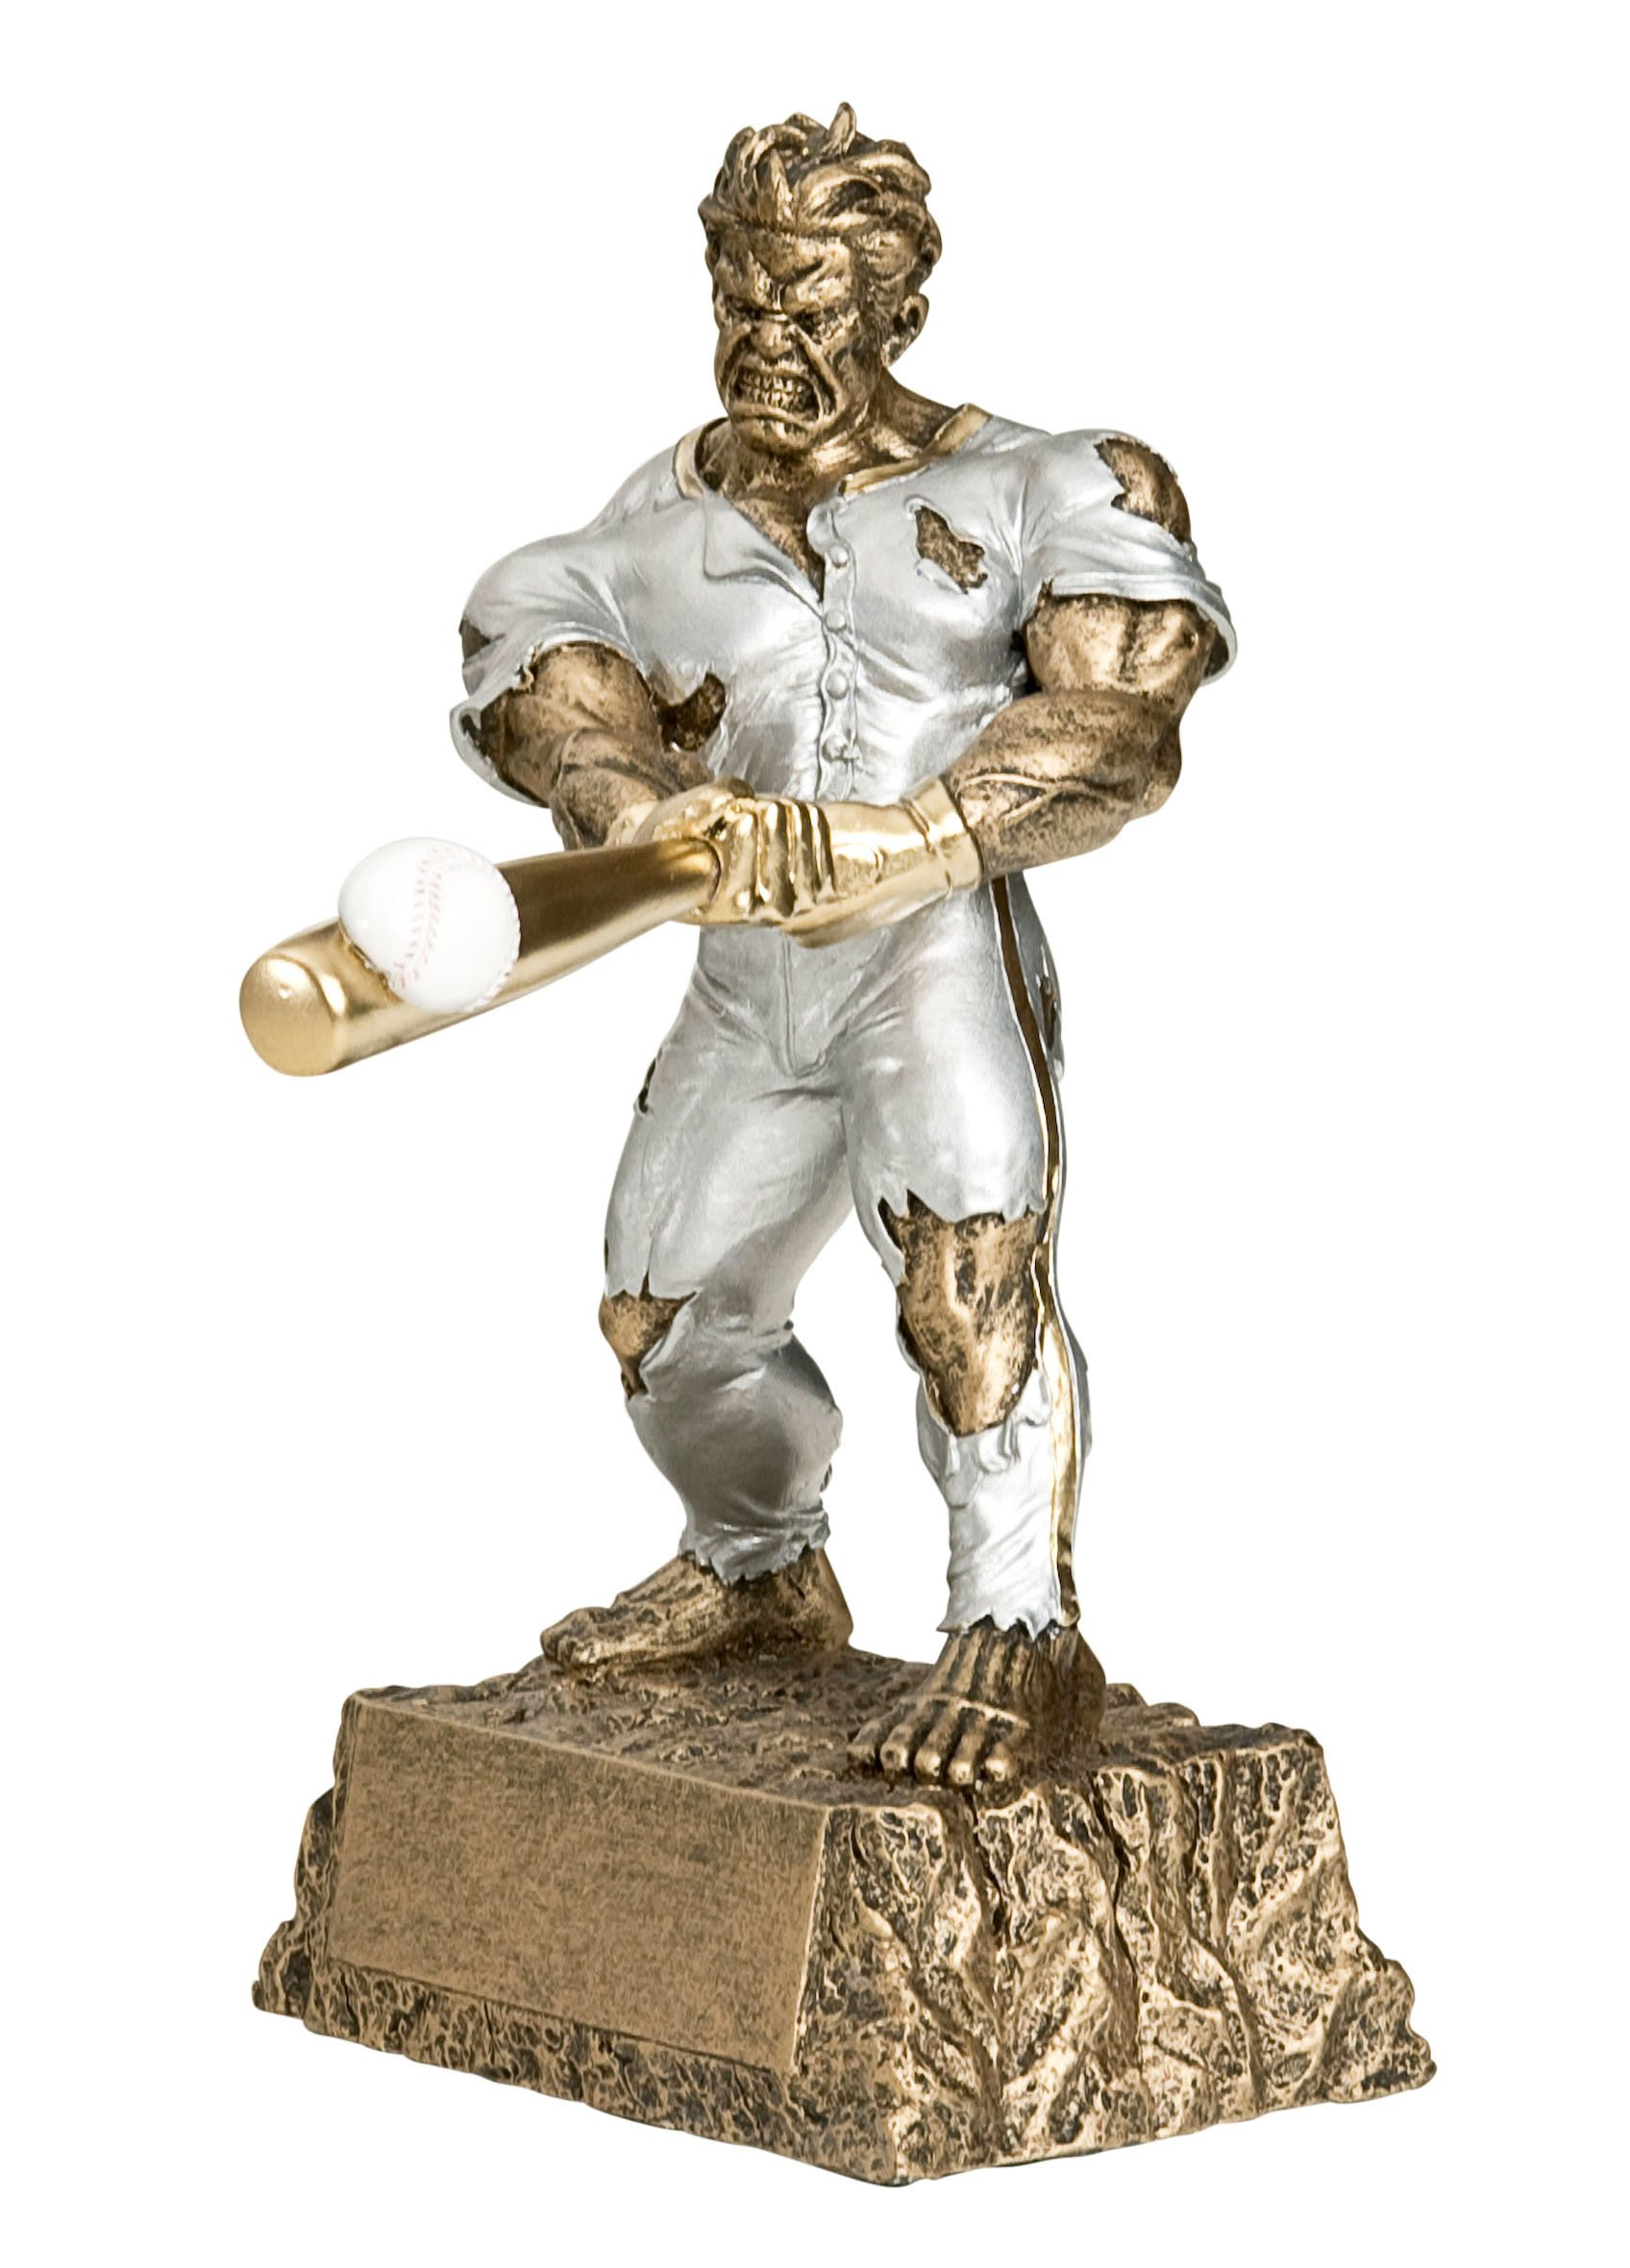 Monster Baseball Trophy - Engraved Plates by Request - Perfect Baseball Award Trophy - Hand Painted Design - Made by Heavy Resin Casting - for Recognition - Decade Awards